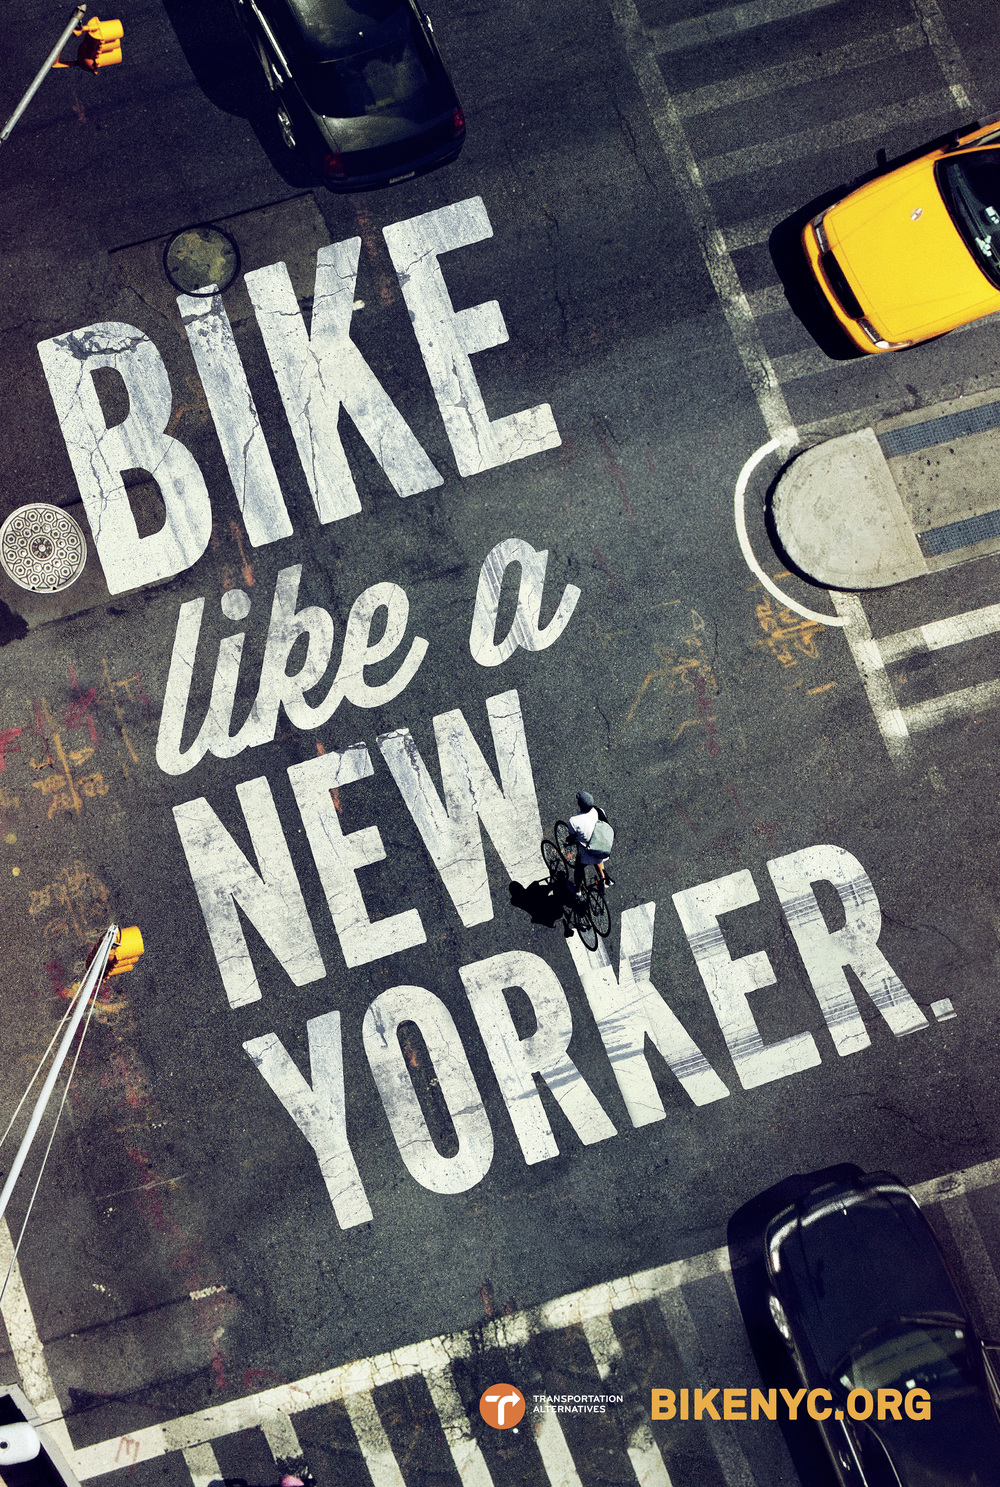 Bike_Like_A_NewYorker_47-75x71.jpg